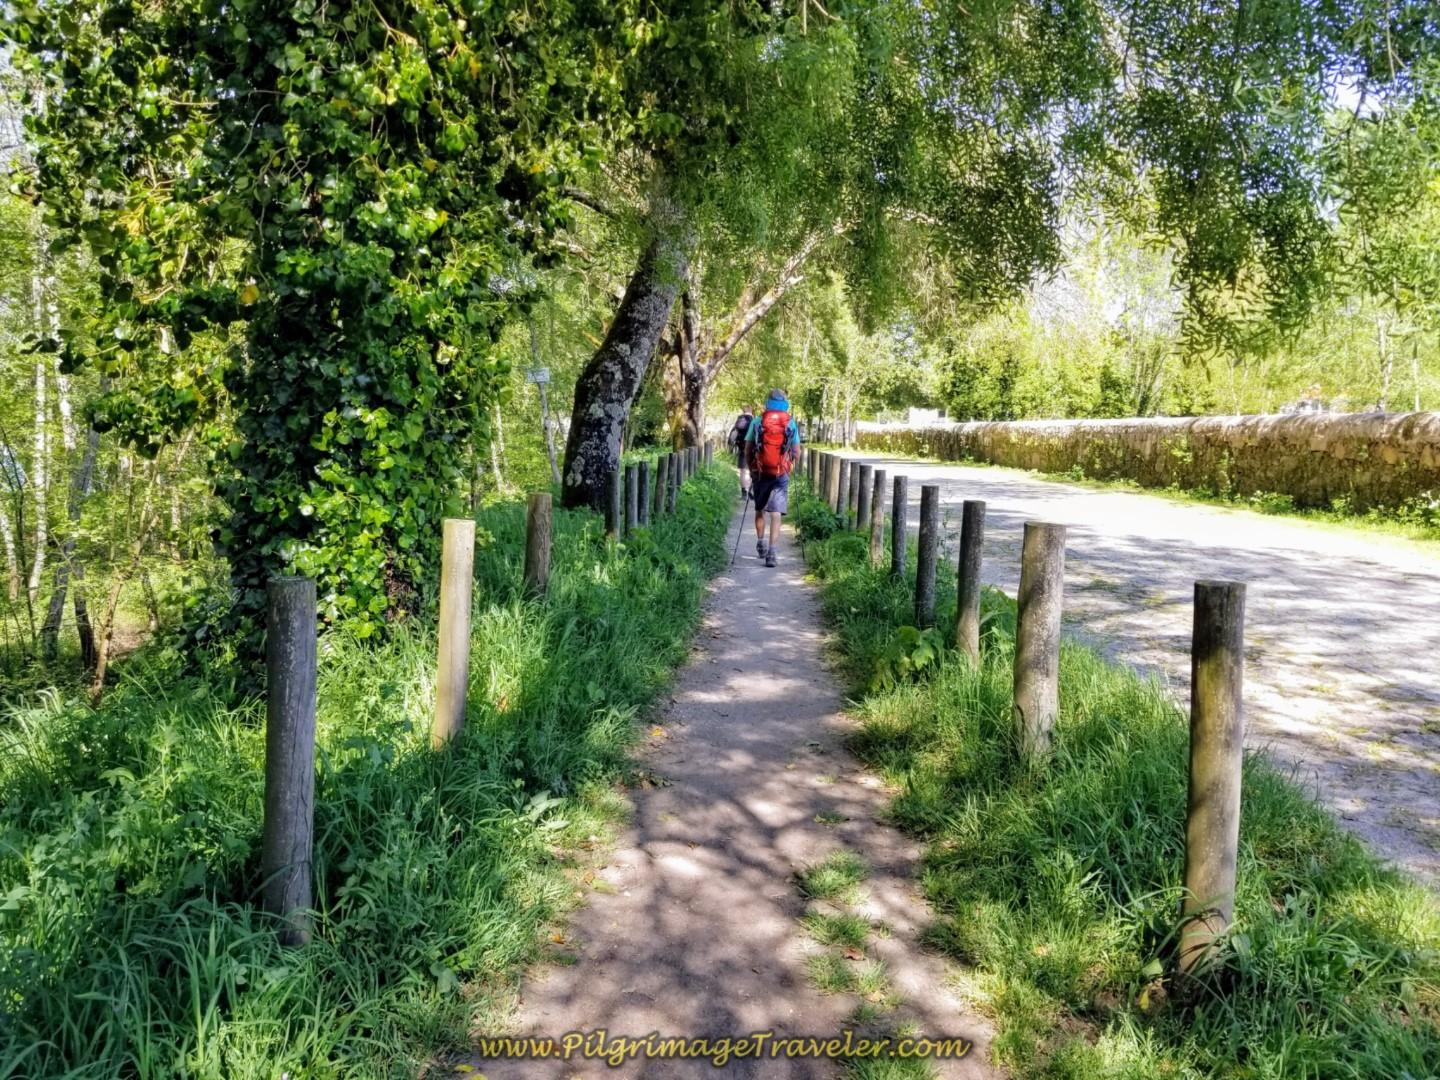 Camino Path Along the Lima River, entering Ponte de Lima, on day seventeen on the Central Route of the Portuguese Camino